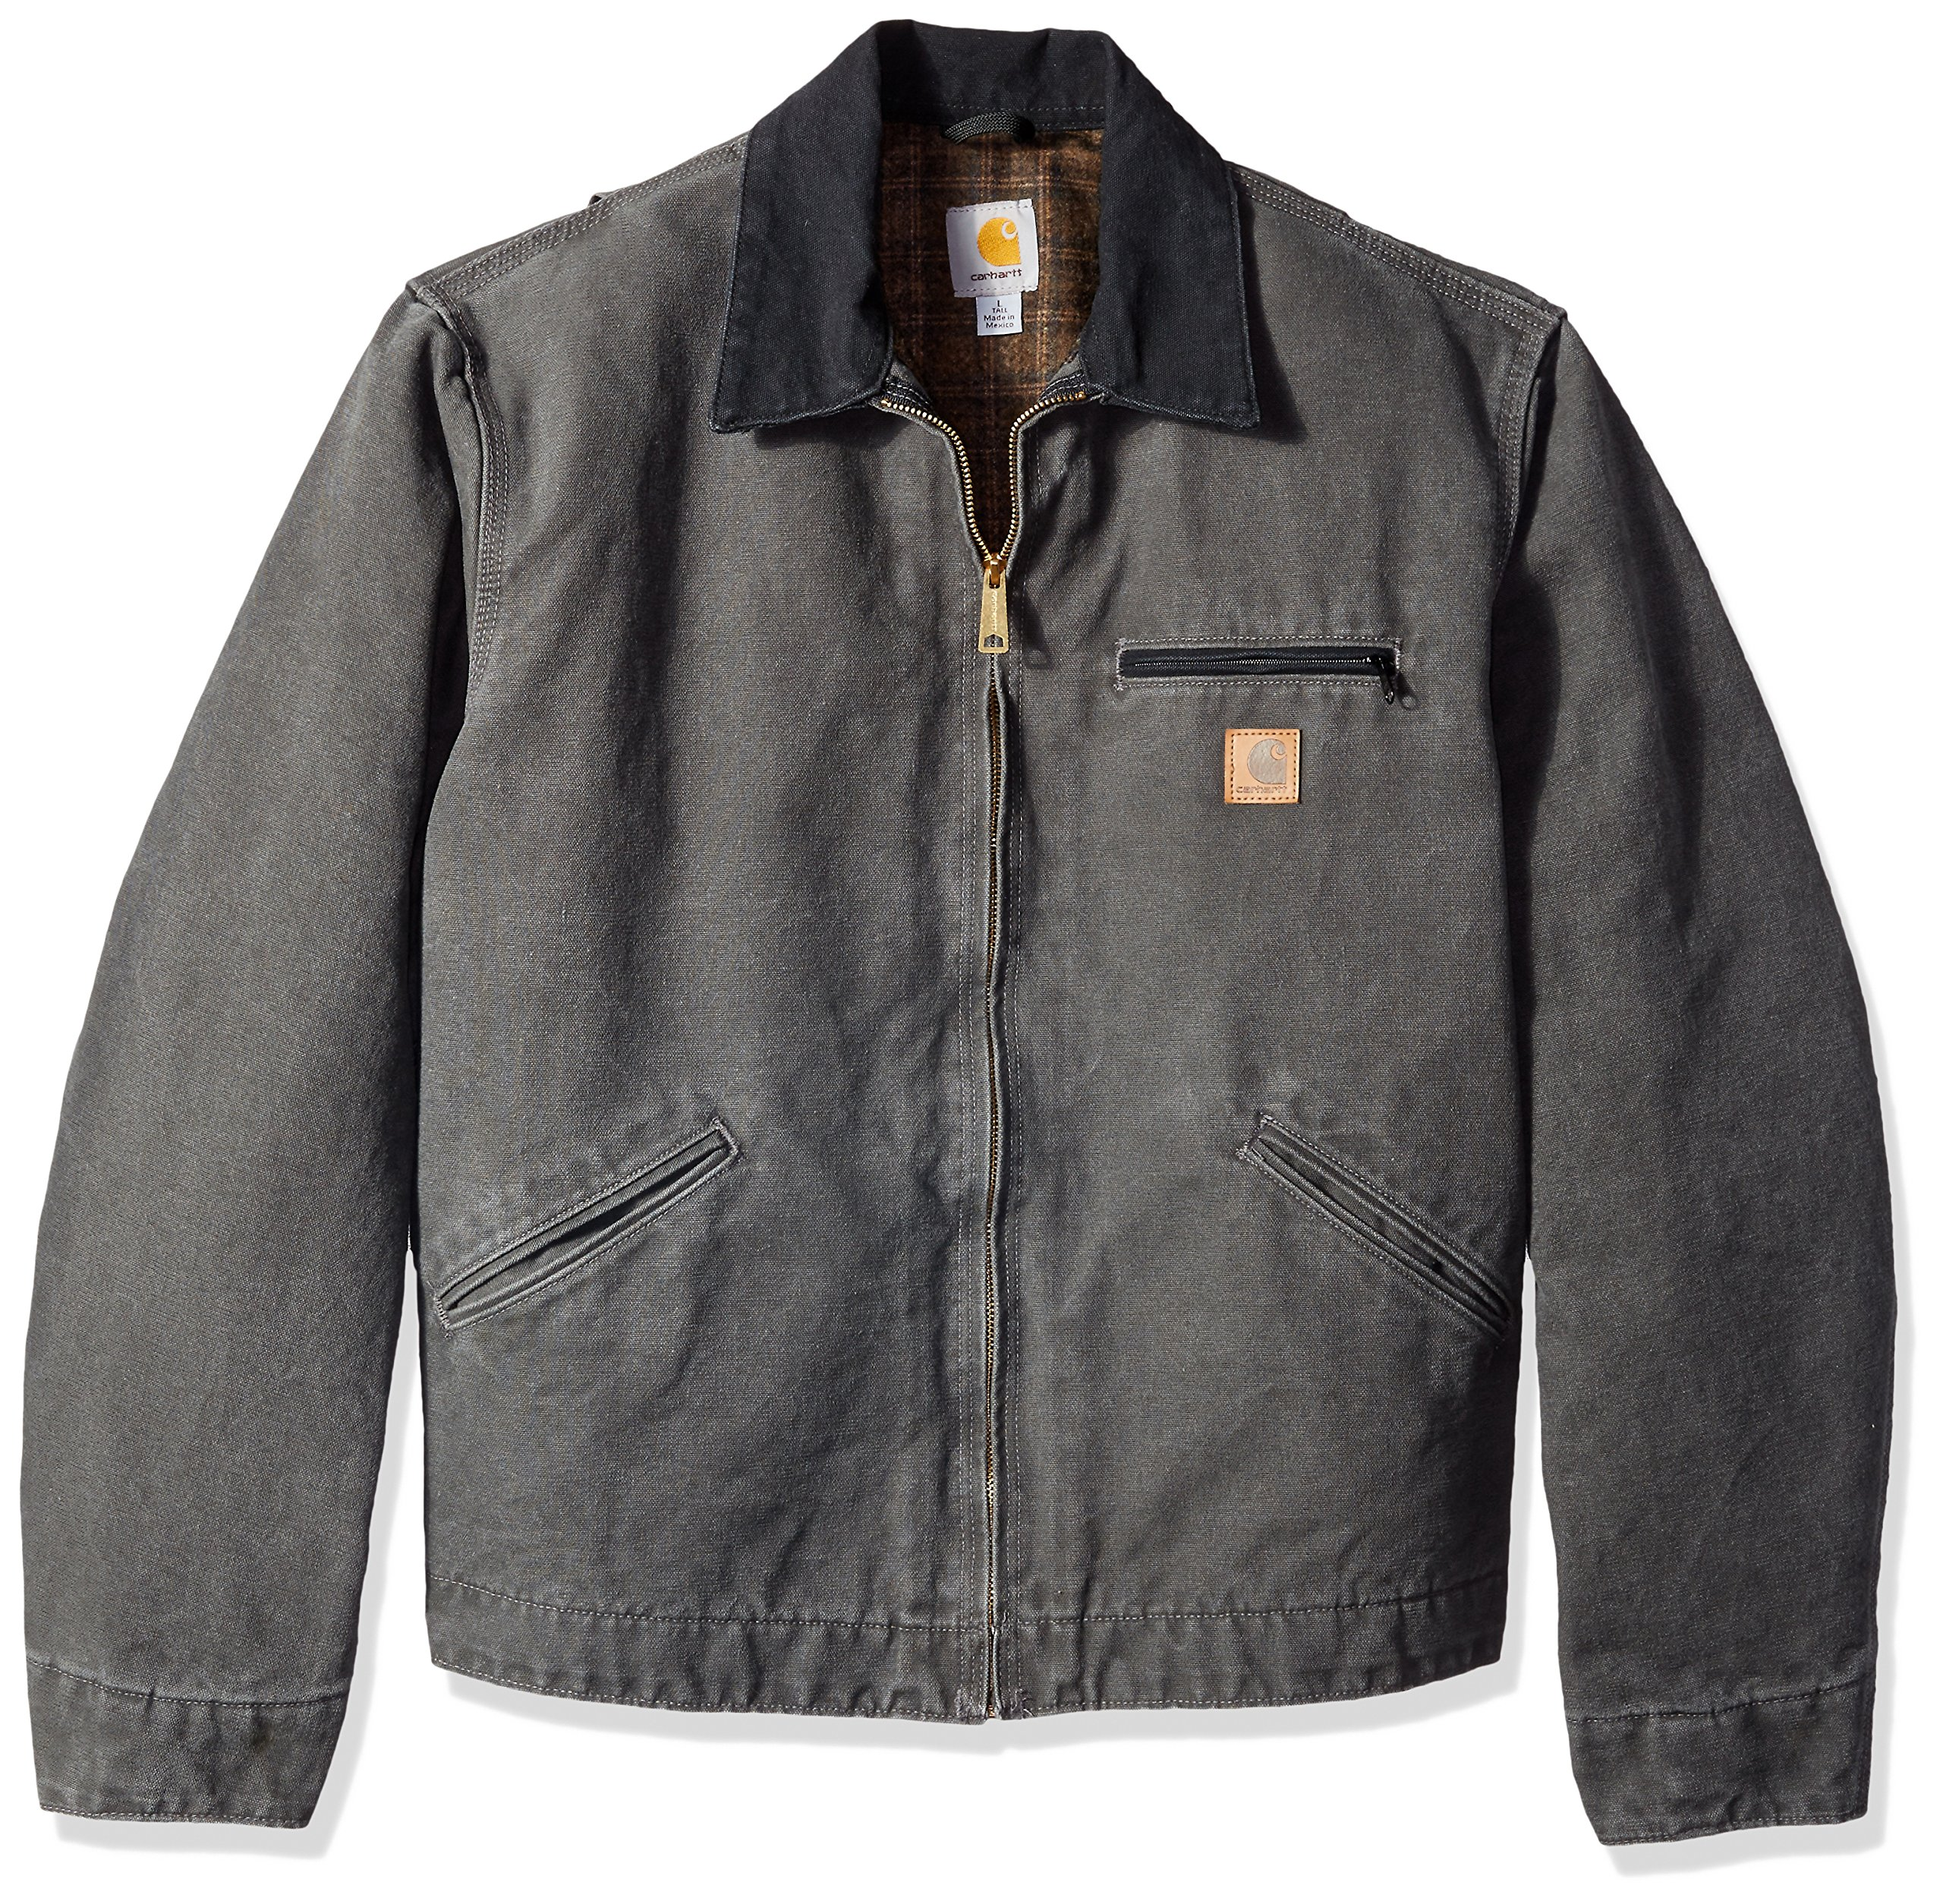 Carhartt Men's Big & Tall Blanket Lined Sandstone Detroit Jacket J97,Gravel,XXXX-Large